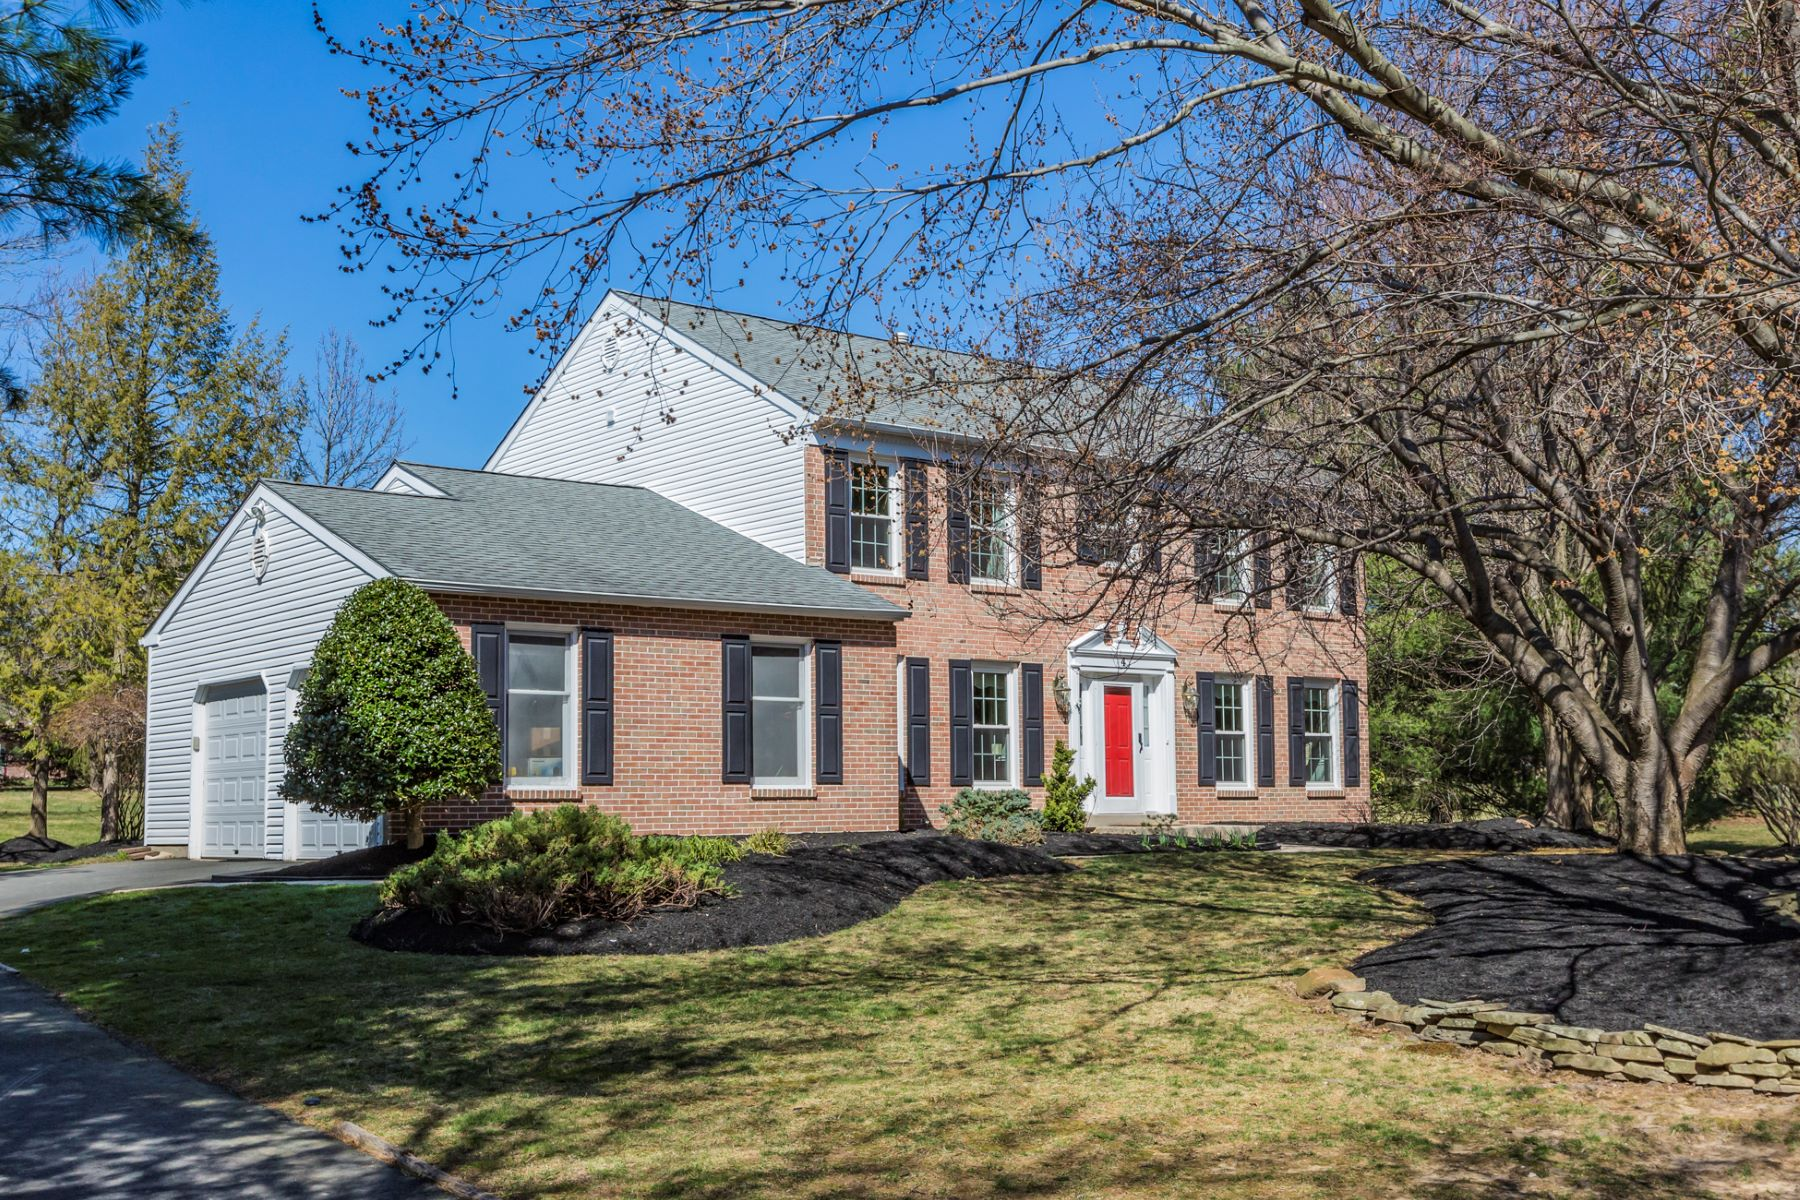 Частный односемейный дом для того Продажа на Classic Colonial with a Fresh, Youthful Air - Lawrence Township 4 Oxford Court Lawrenceville, 08648 Соединенные Штаты